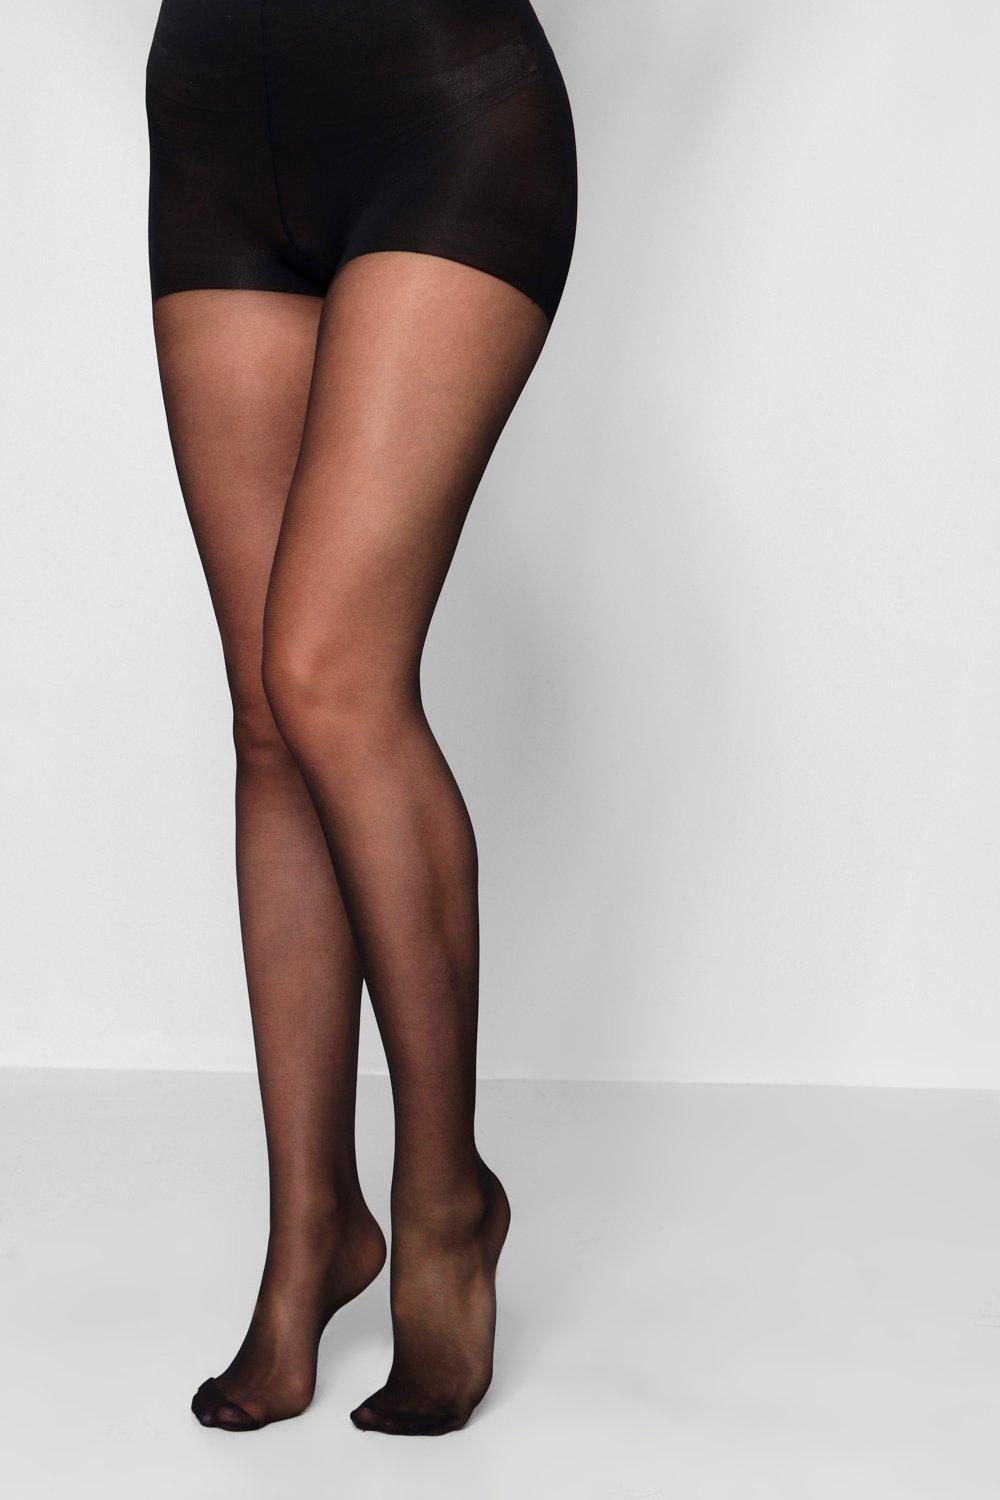 Image of %brand% 15 Denier Shaper Tights